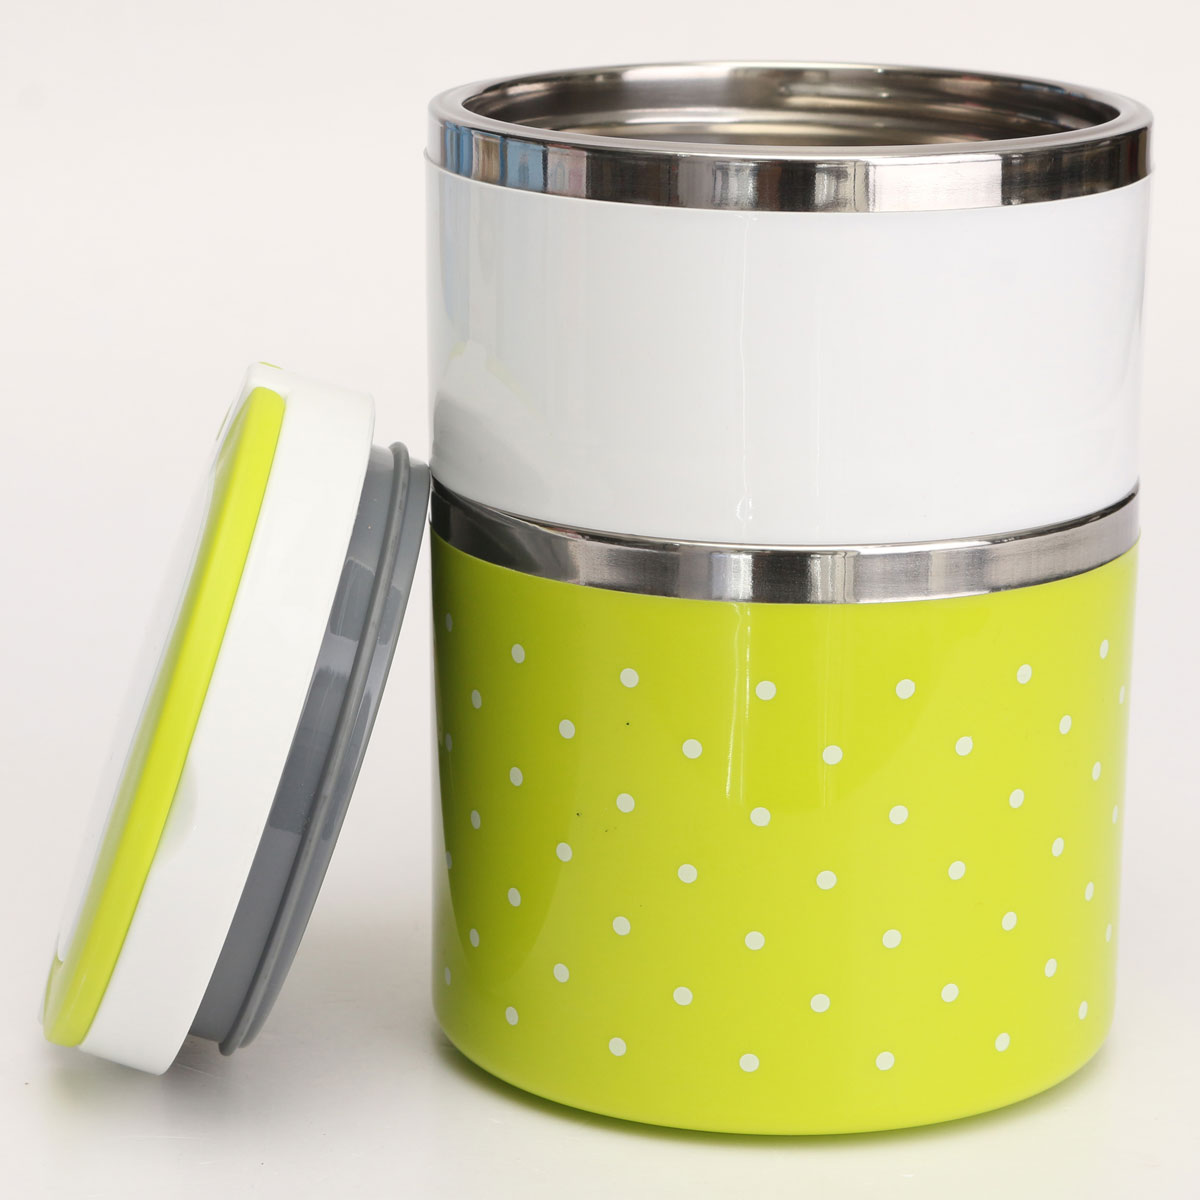 2 layer cute stainless steel lunch box insulation bento food picnic container. Black Bedroom Furniture Sets. Home Design Ideas